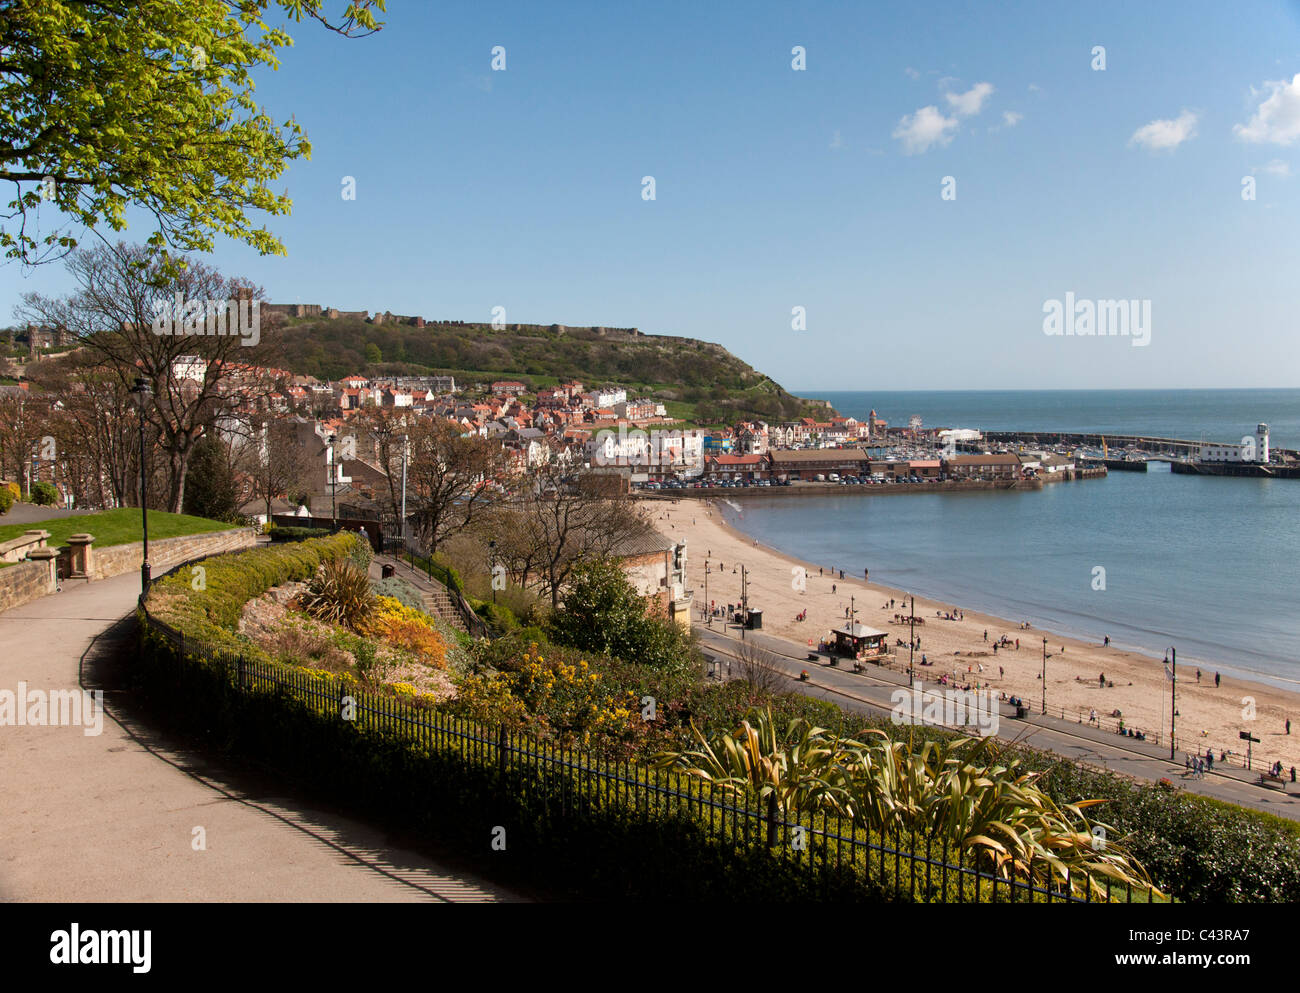 Scarborough South Bay in the sunshine. - Stock Image